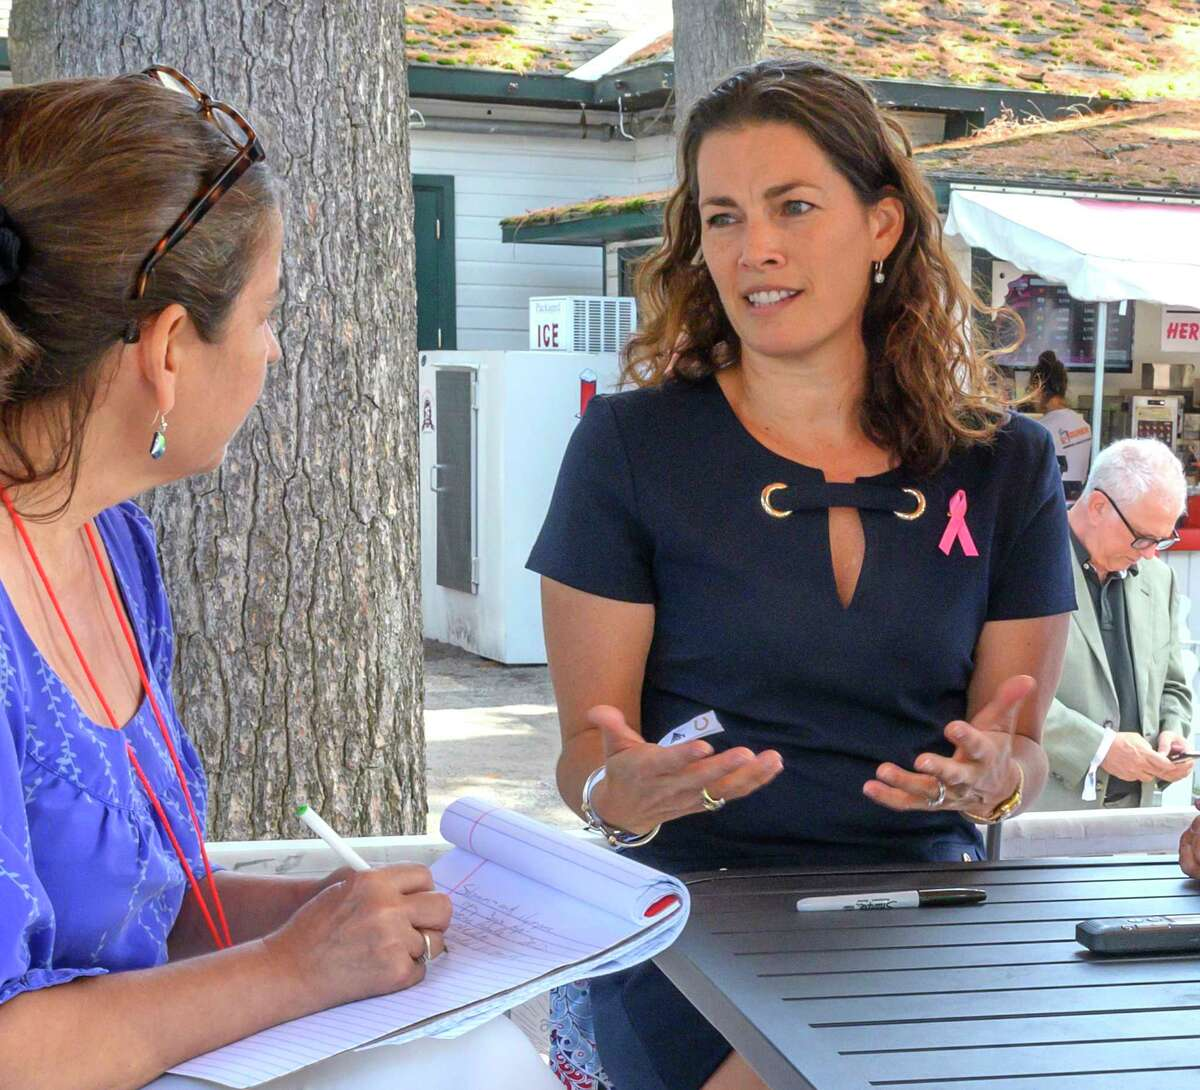 Olympian Nancy Kerrigan, right, speaks with the Times Union during her visit to the Saratoga Race Course on Fabulous Fillys Day Thursday Aug. 8, 2019 in Saratoga Springs, N.Y. Photo by Skip Dickstein